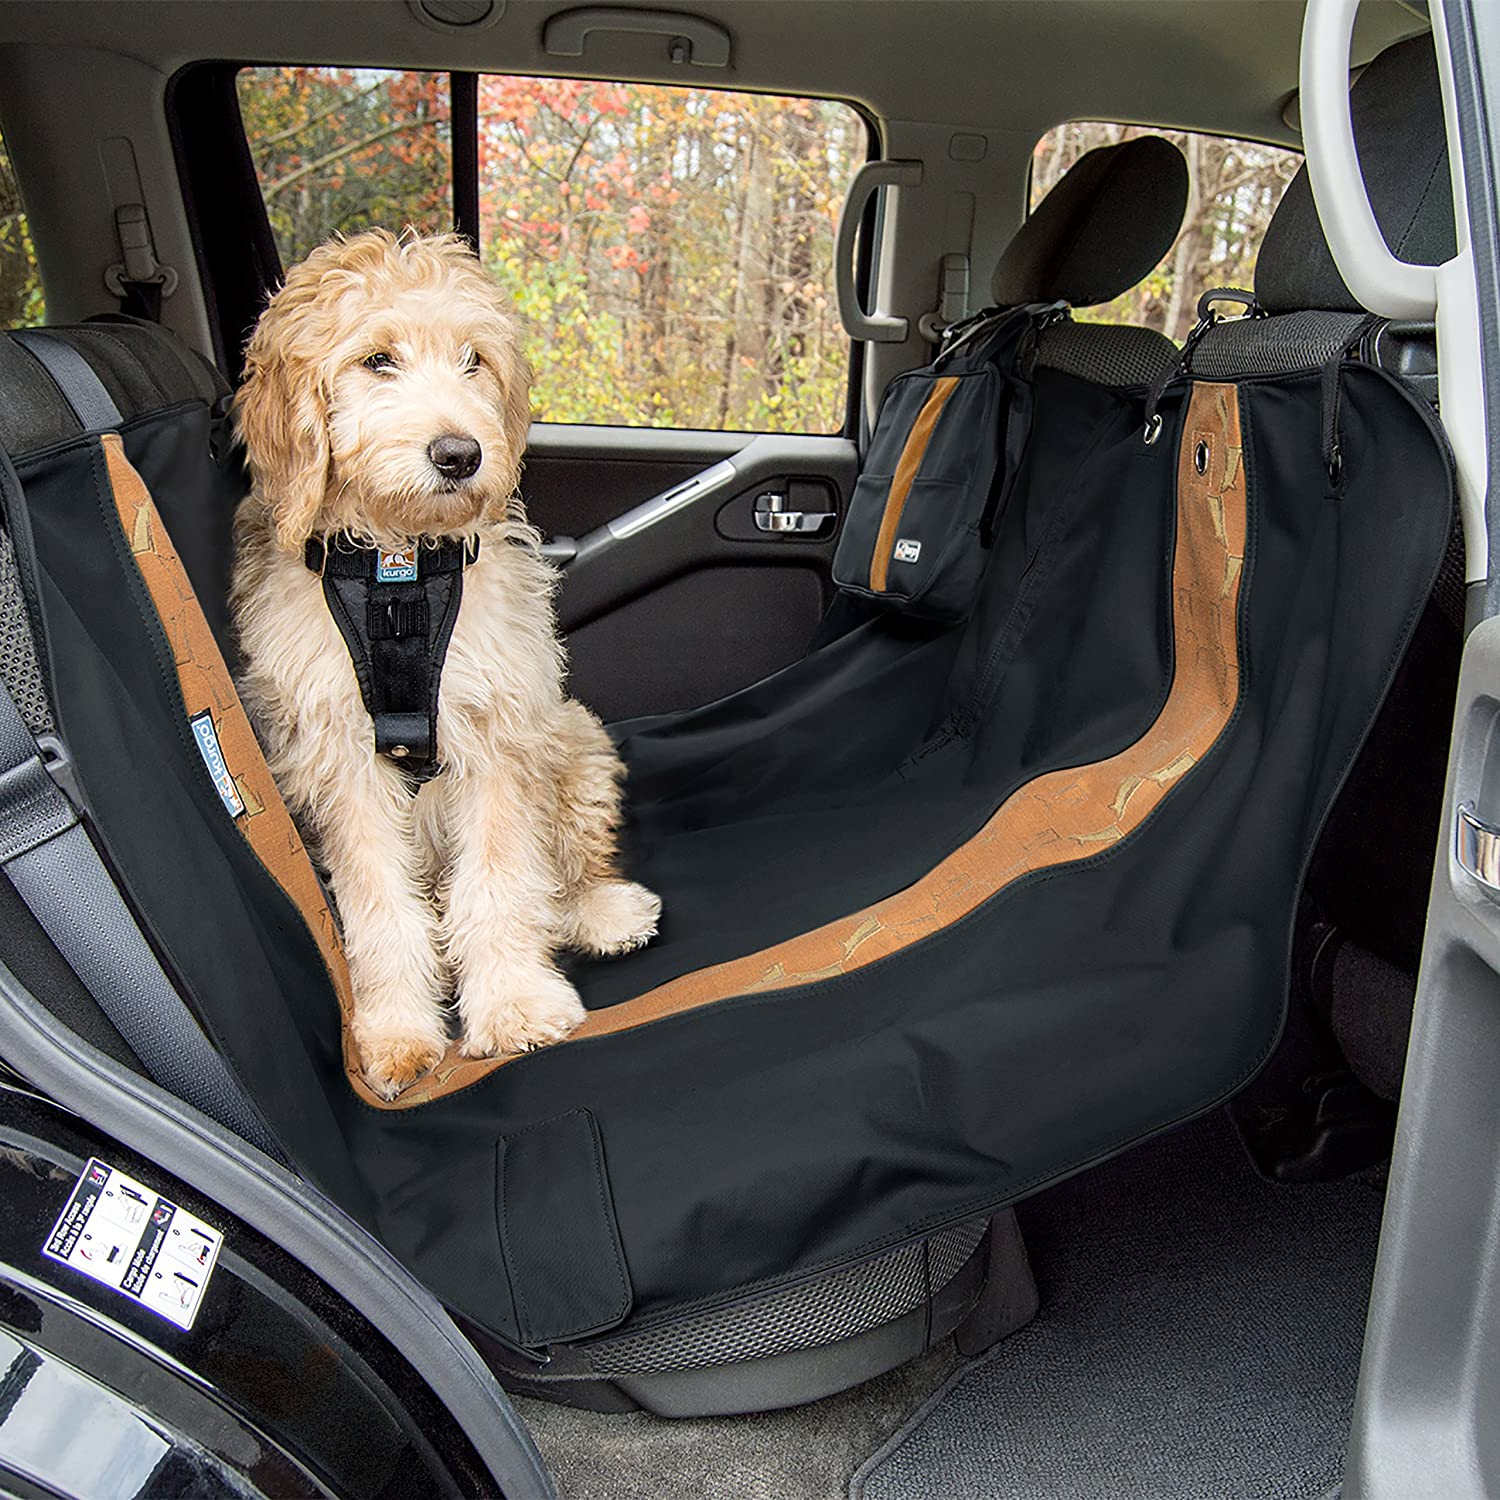 Great Amazon.com : Kurgo Wander Dog Hammock Style Seat Cover For Pets, Pet Seat  Cover, Dog Car Hammock   Water Resistant, Black : Automotive Pet Seat  Covers : Pet ...